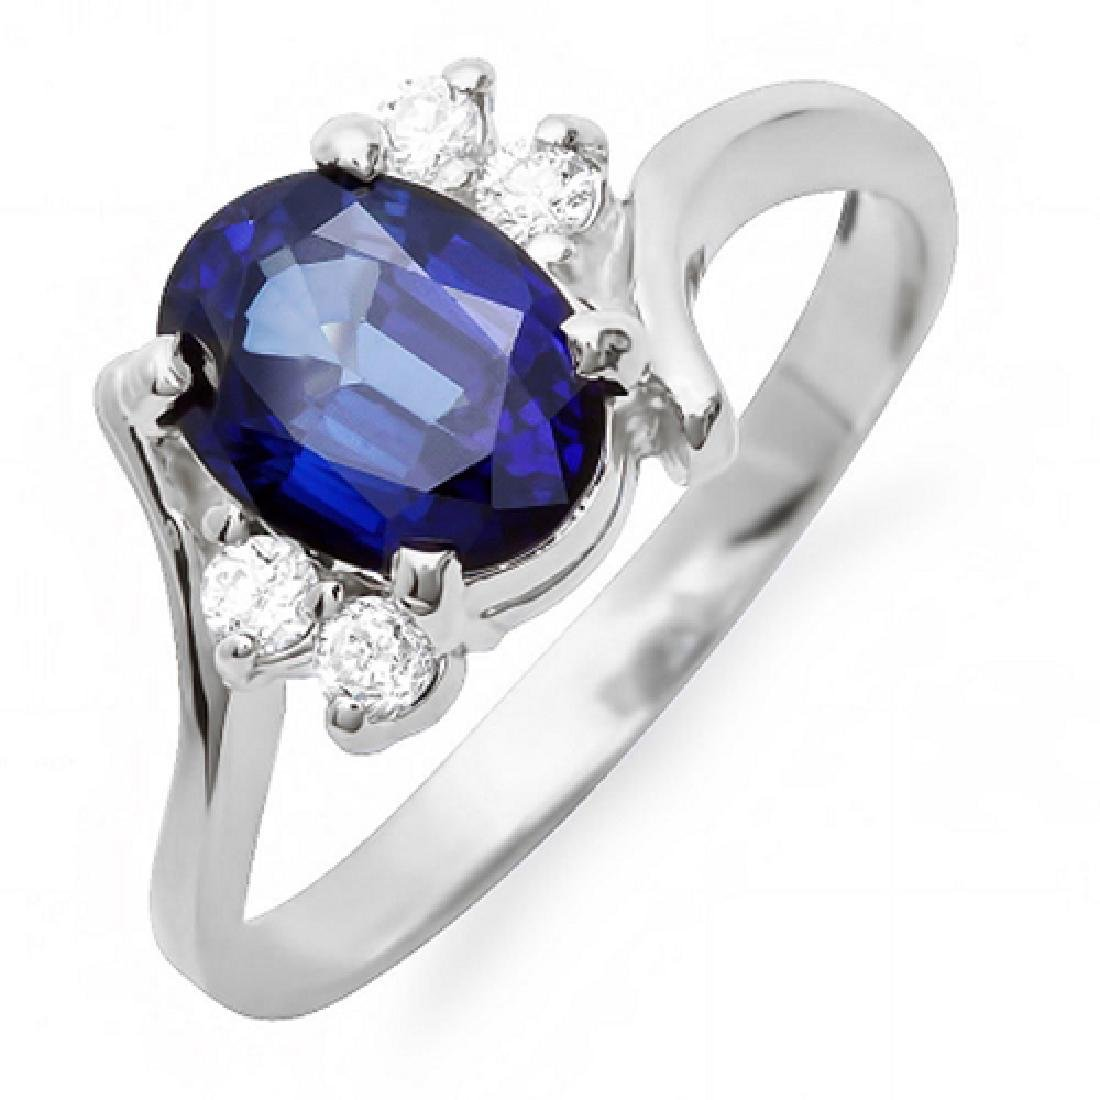 2.10 Carat Natural Sapphire 14K Solid White Gold